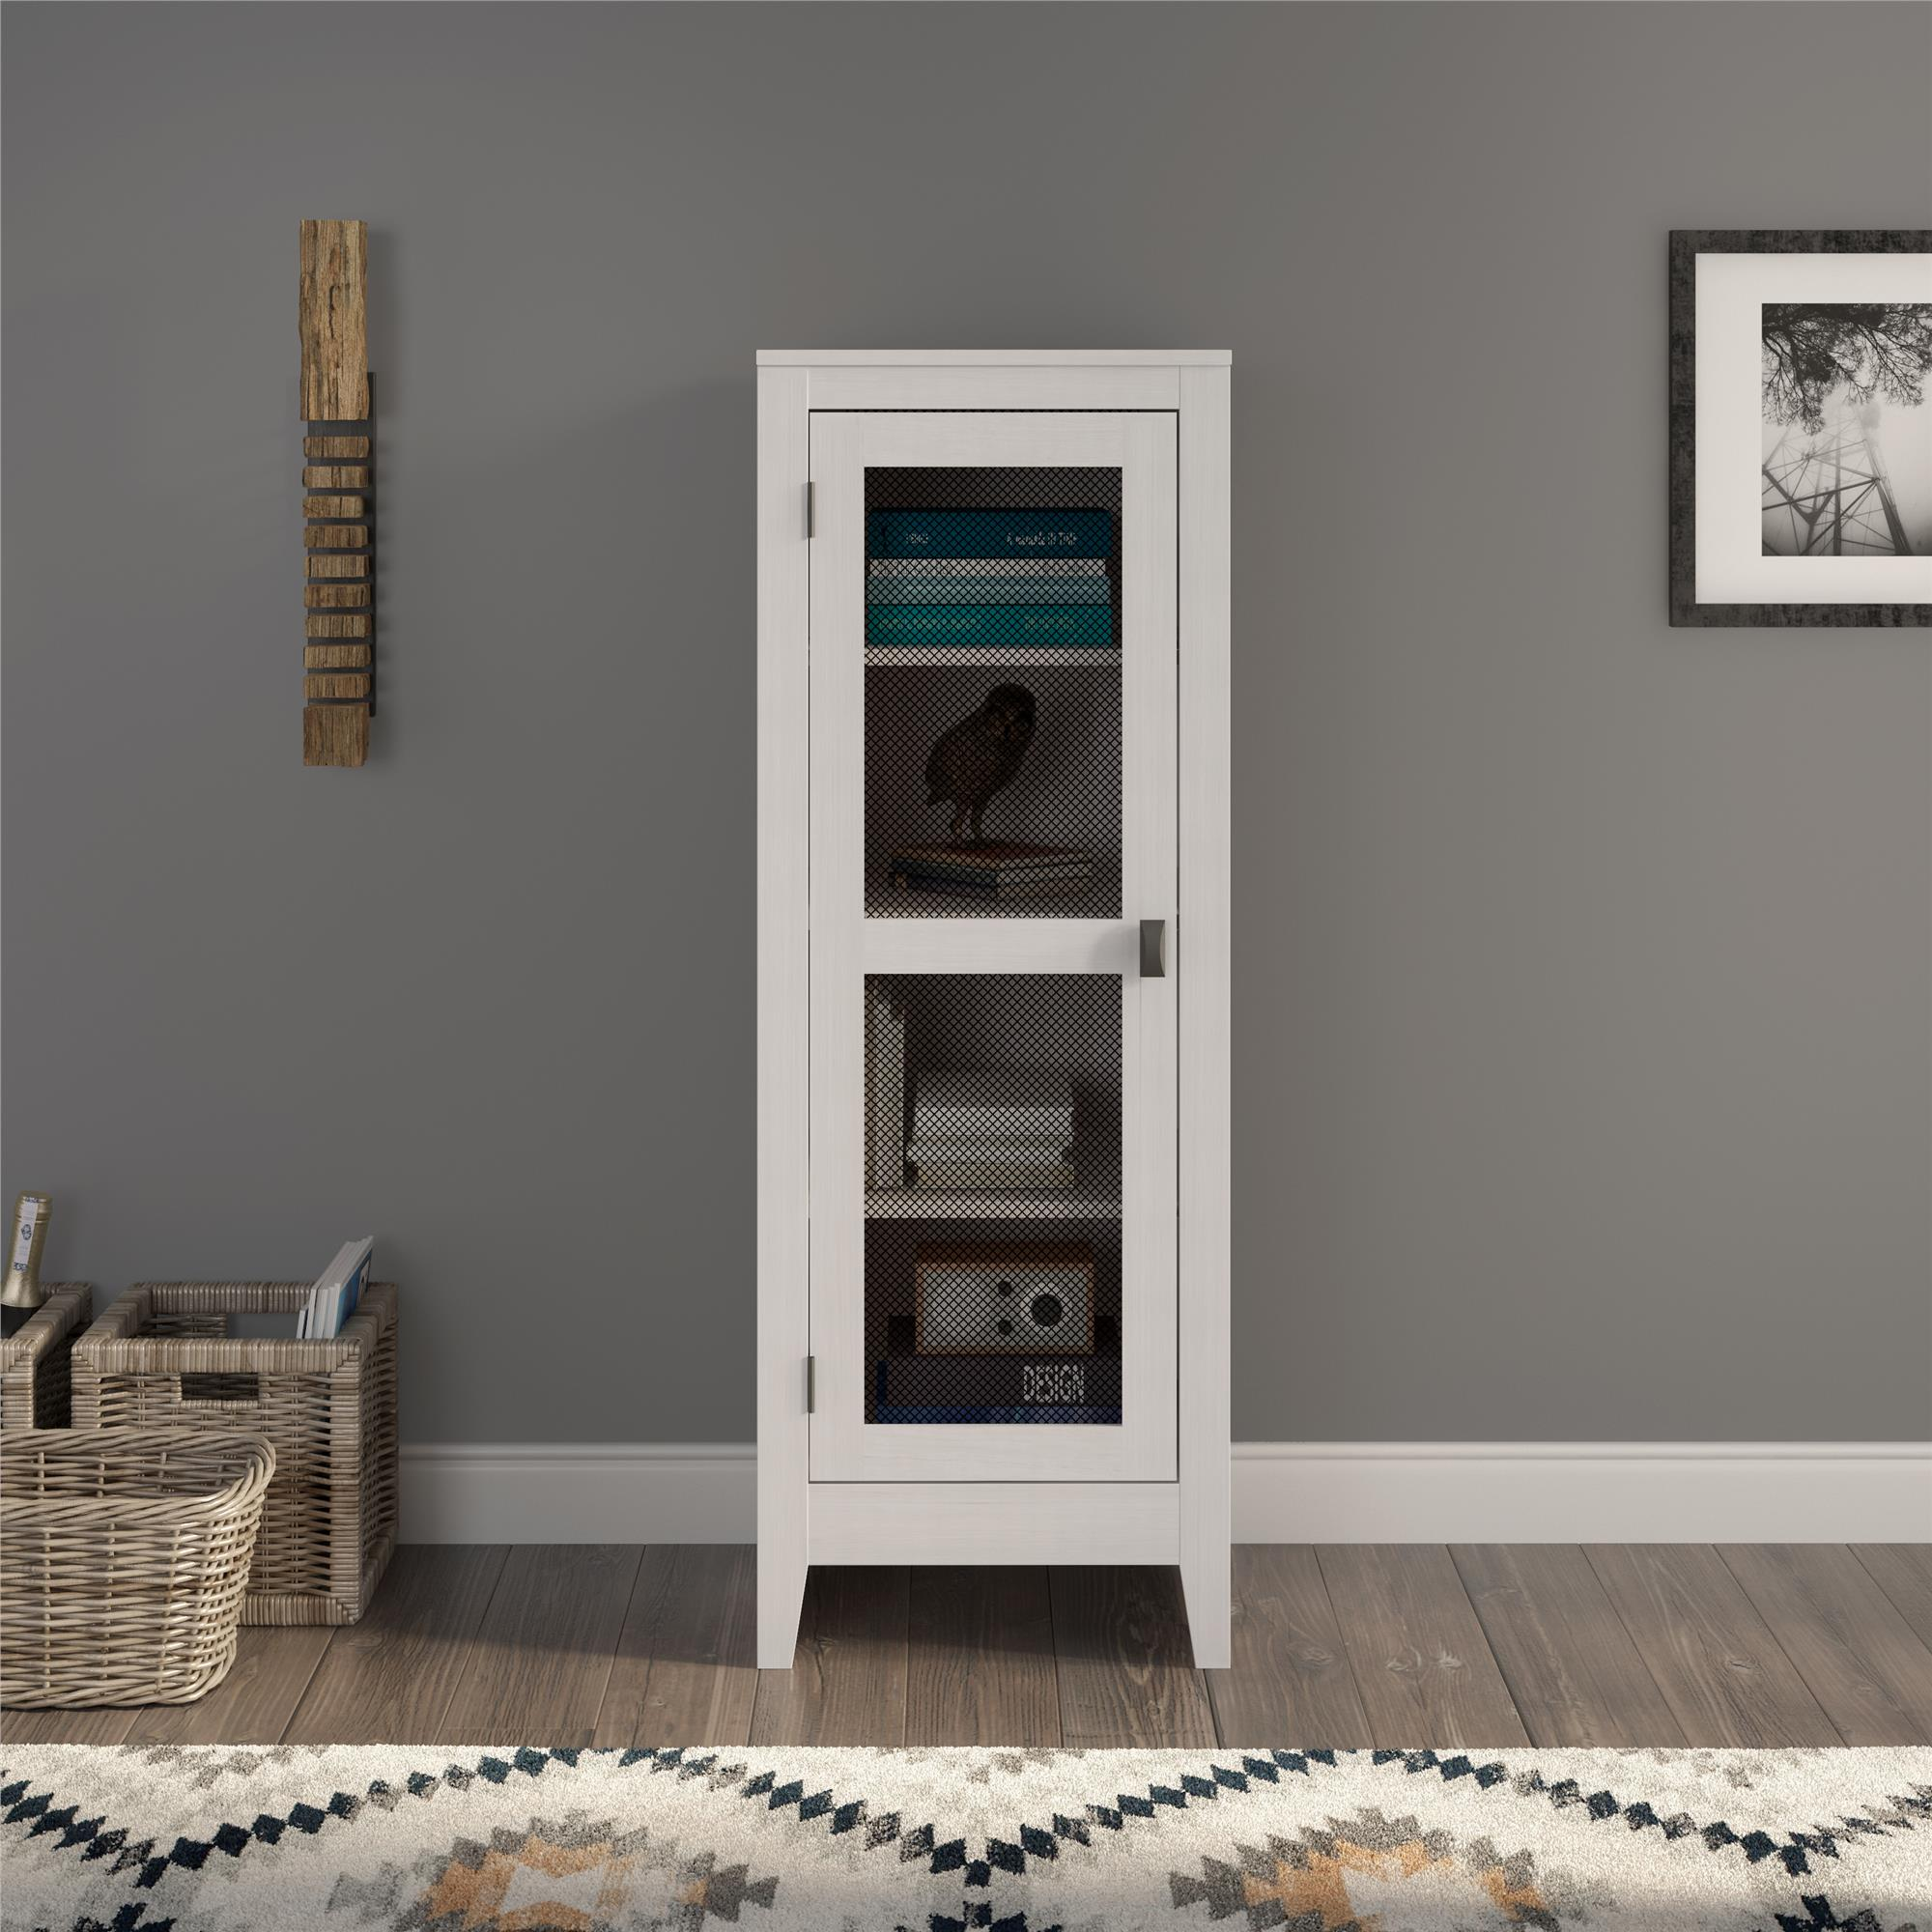 SystemBuild Paradise Valley Storage Cabinet with Mesh Door, Ivory Oak